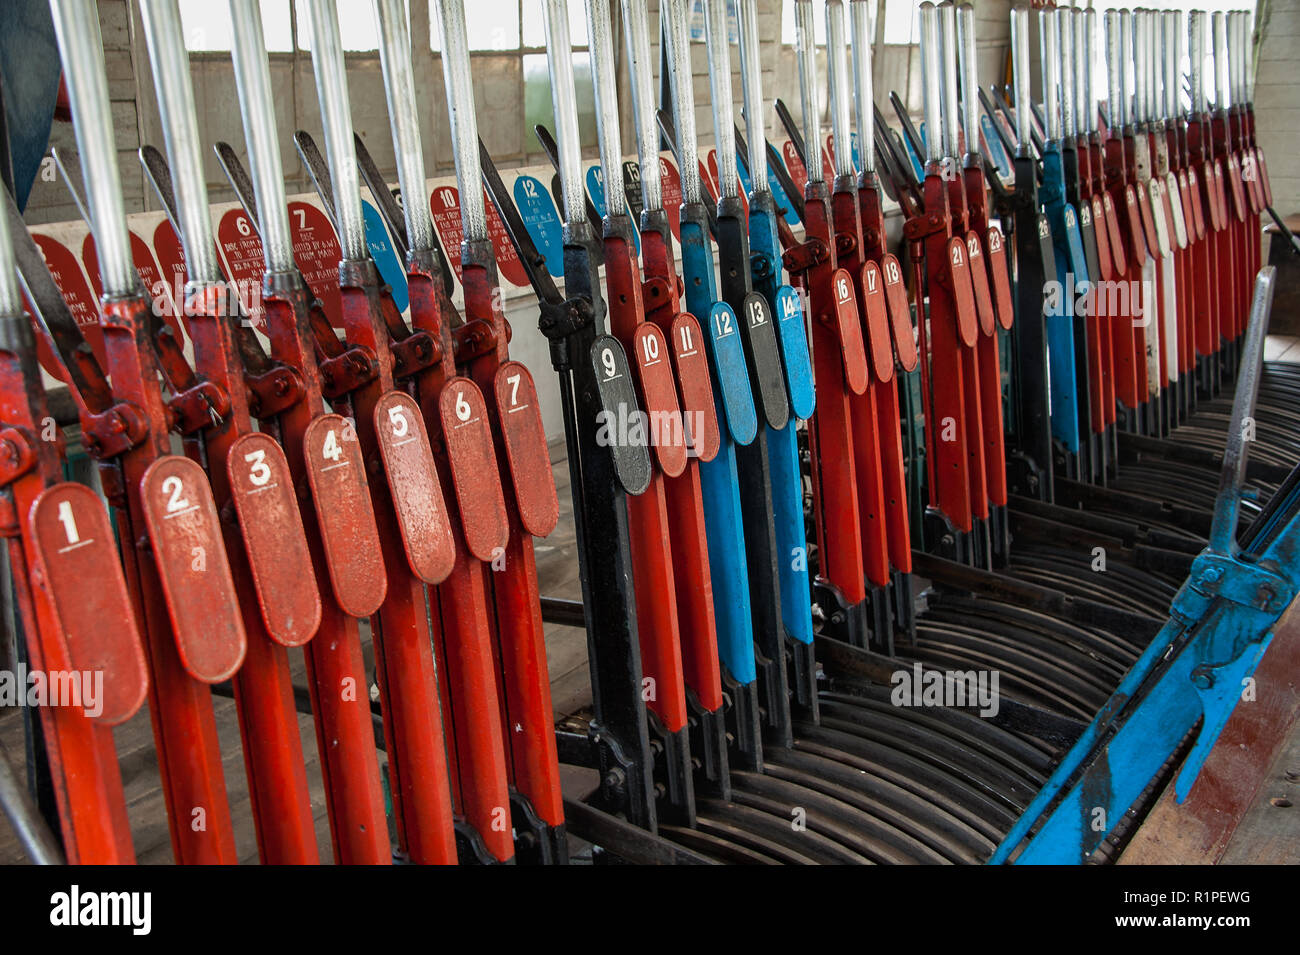 Mechnical levers used to operate railway signals and points, ensuring safe rail travel - Stock Image